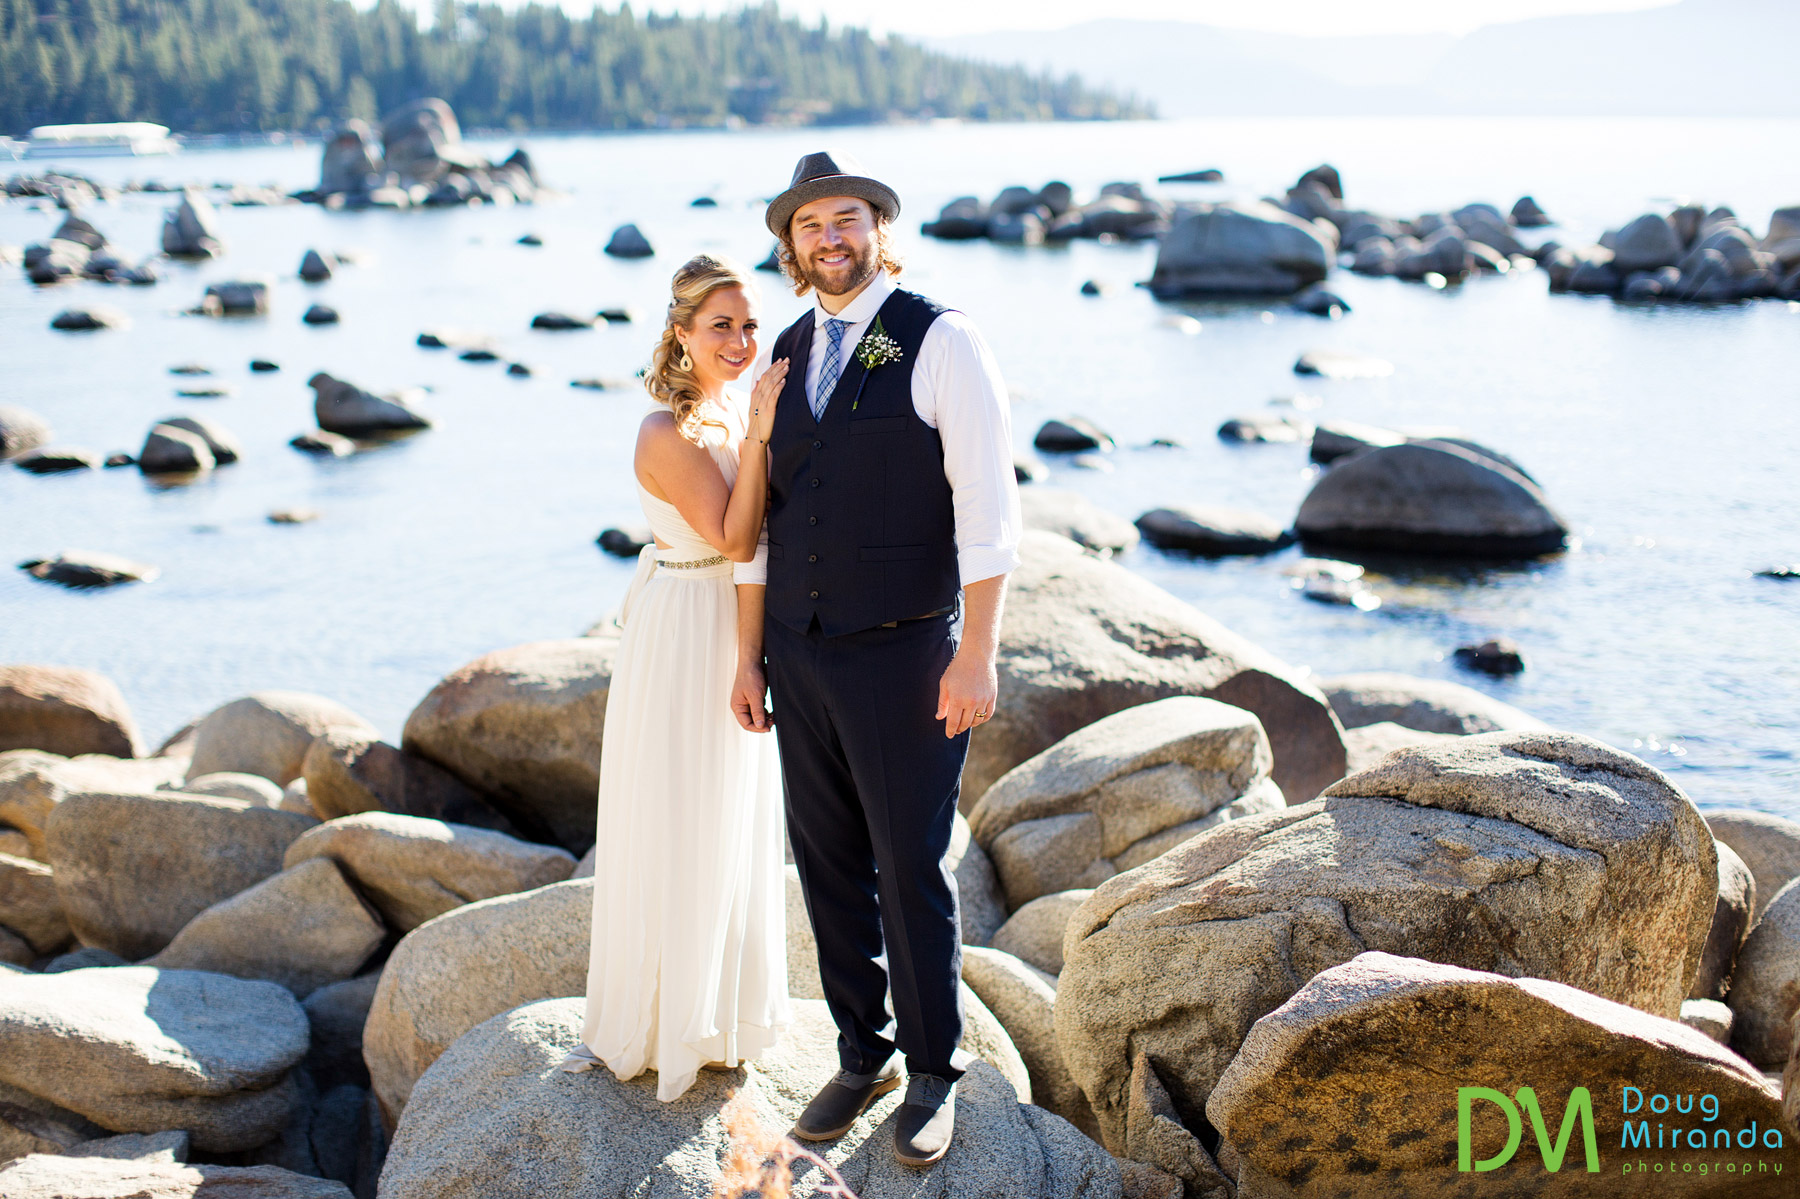 Lake Tahoe just looked incredible on their wedding day.